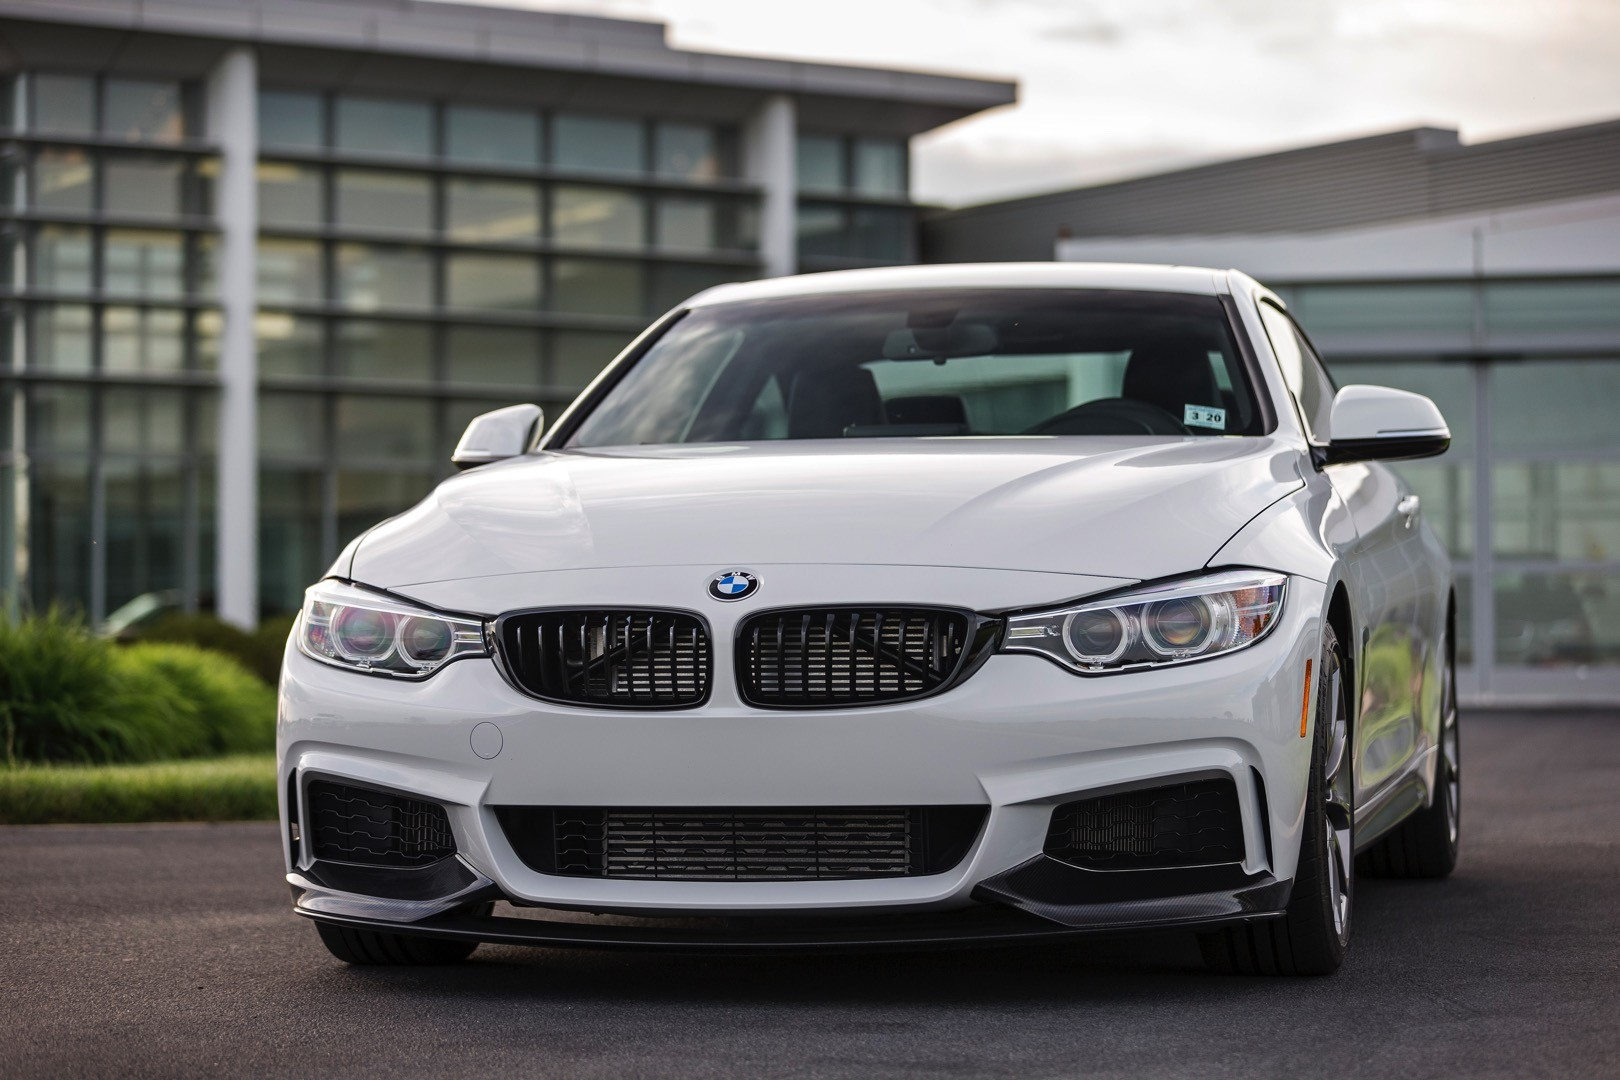 Bmw 435i Zhp Coupe Unveiled Limited To 100 Units Autoevolution